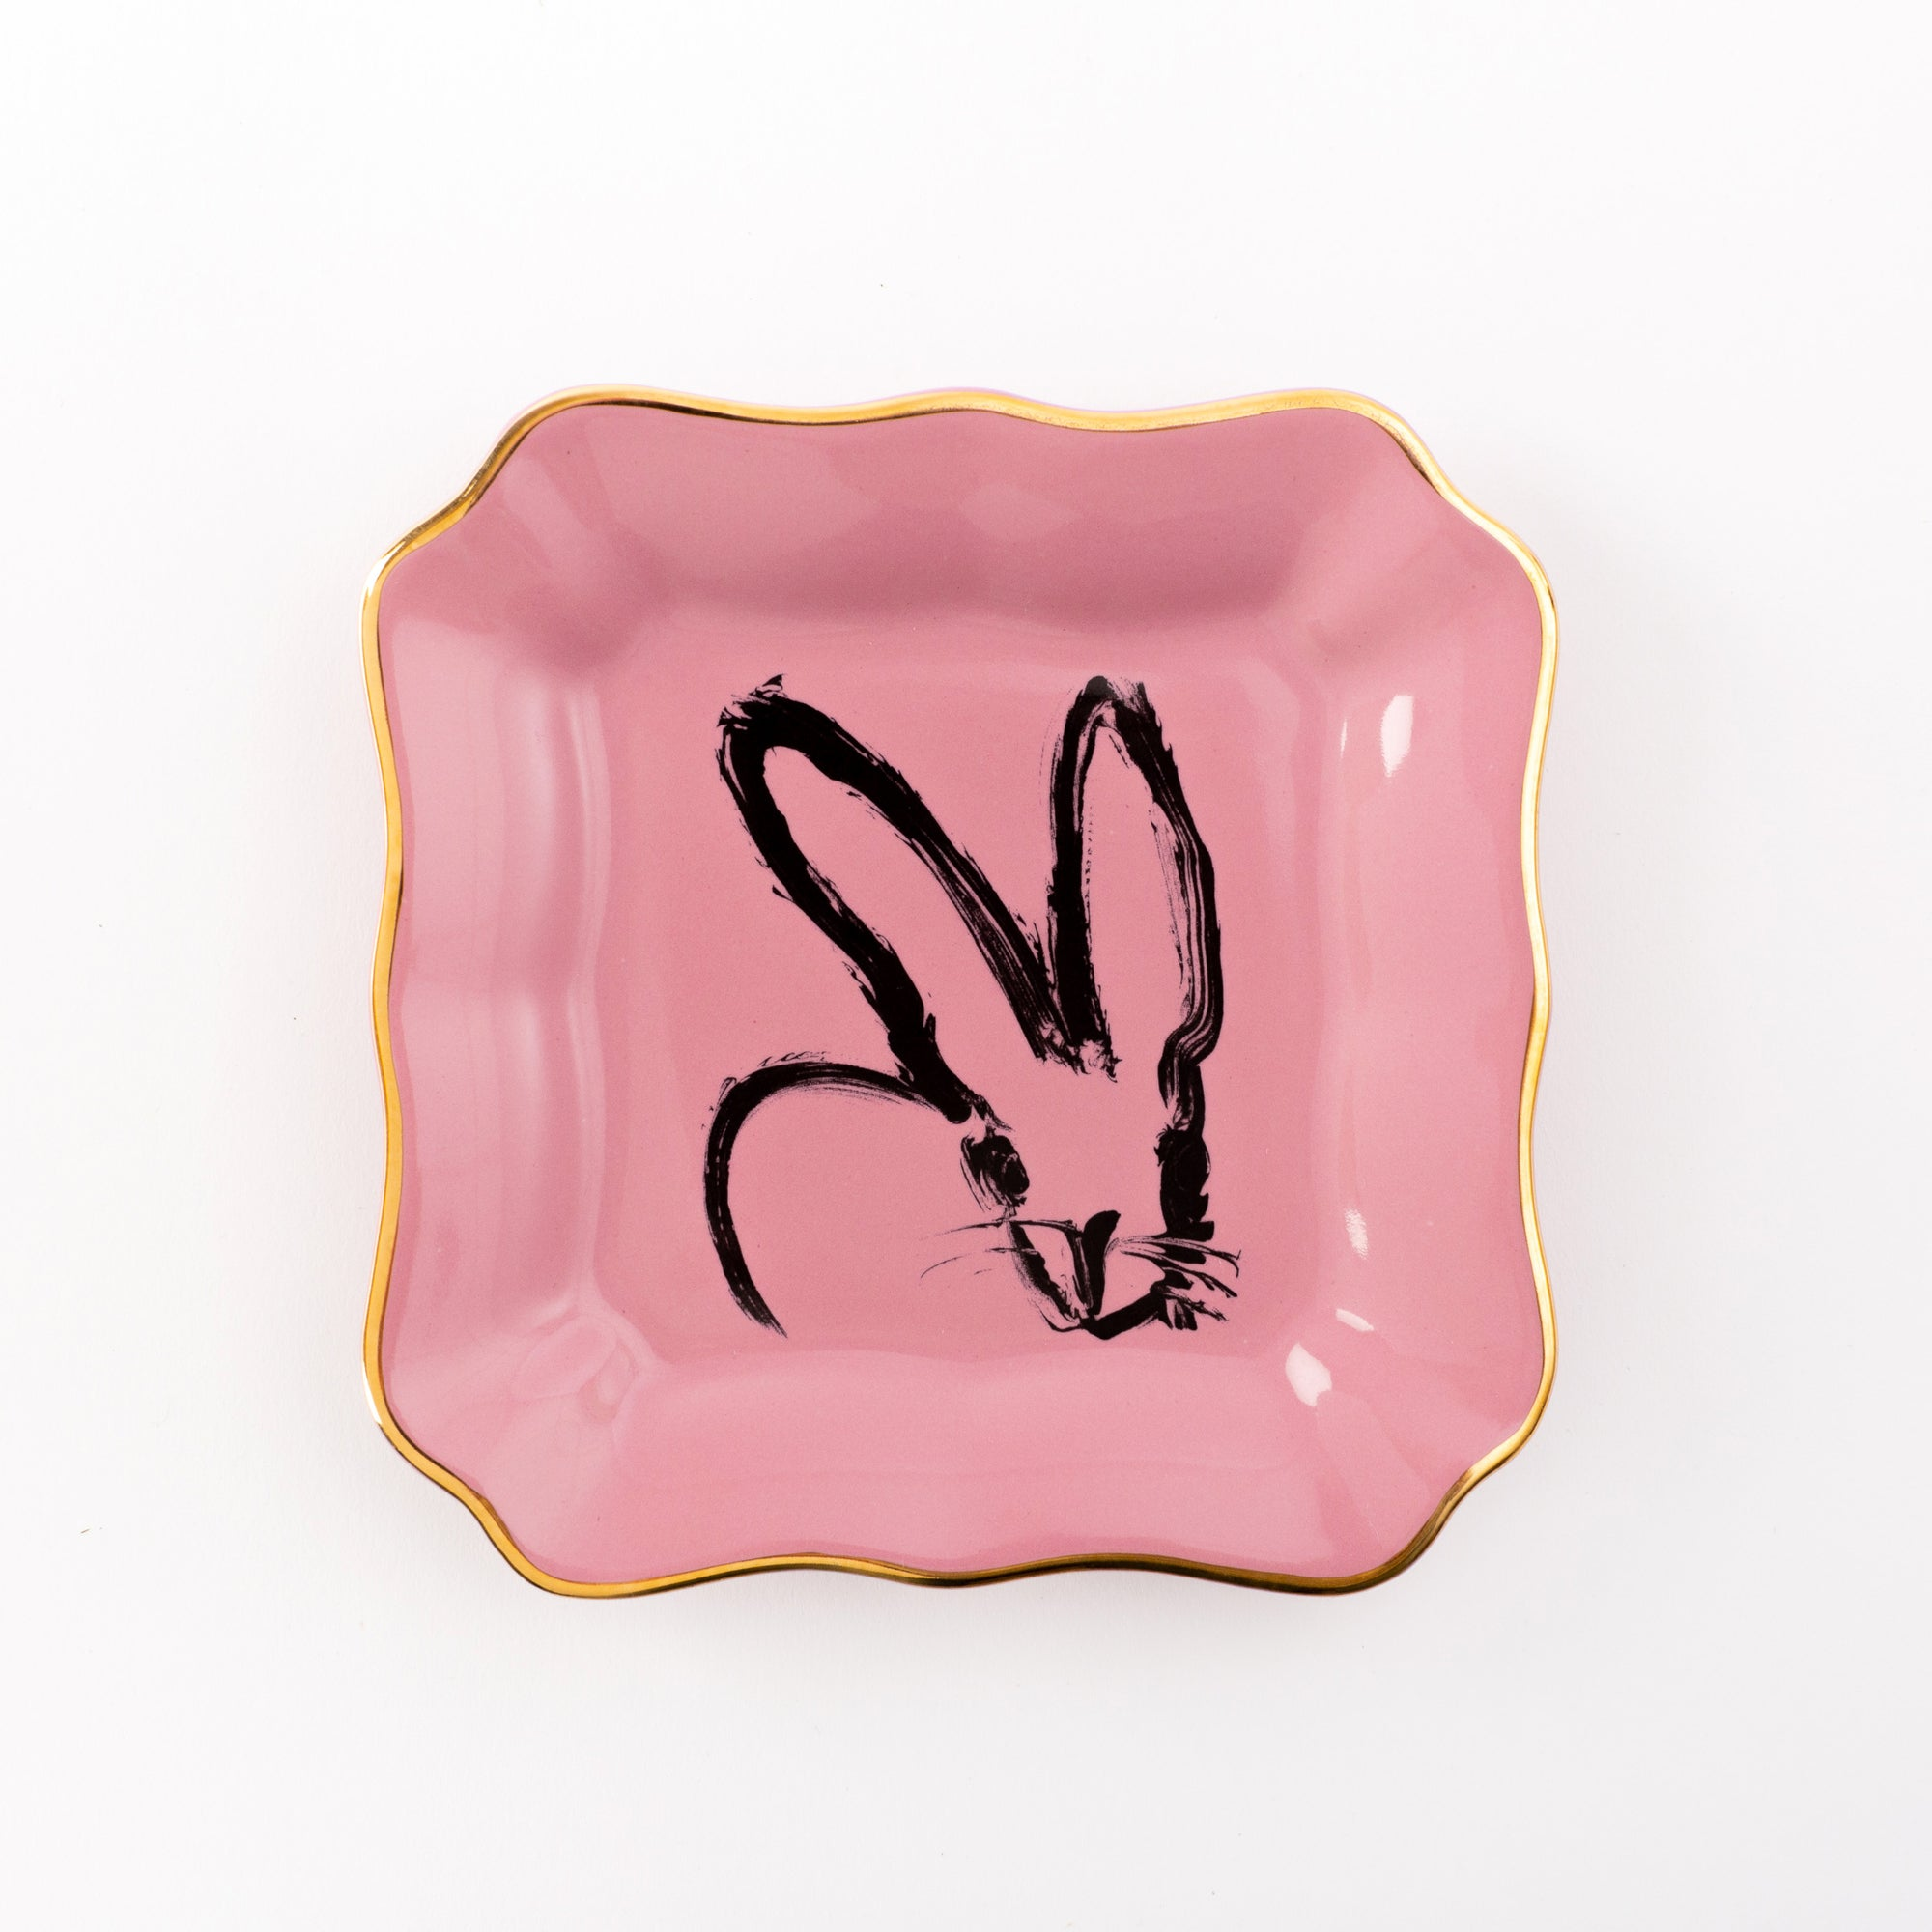 Bunny Portrait Plate - Pink with Gold Rim